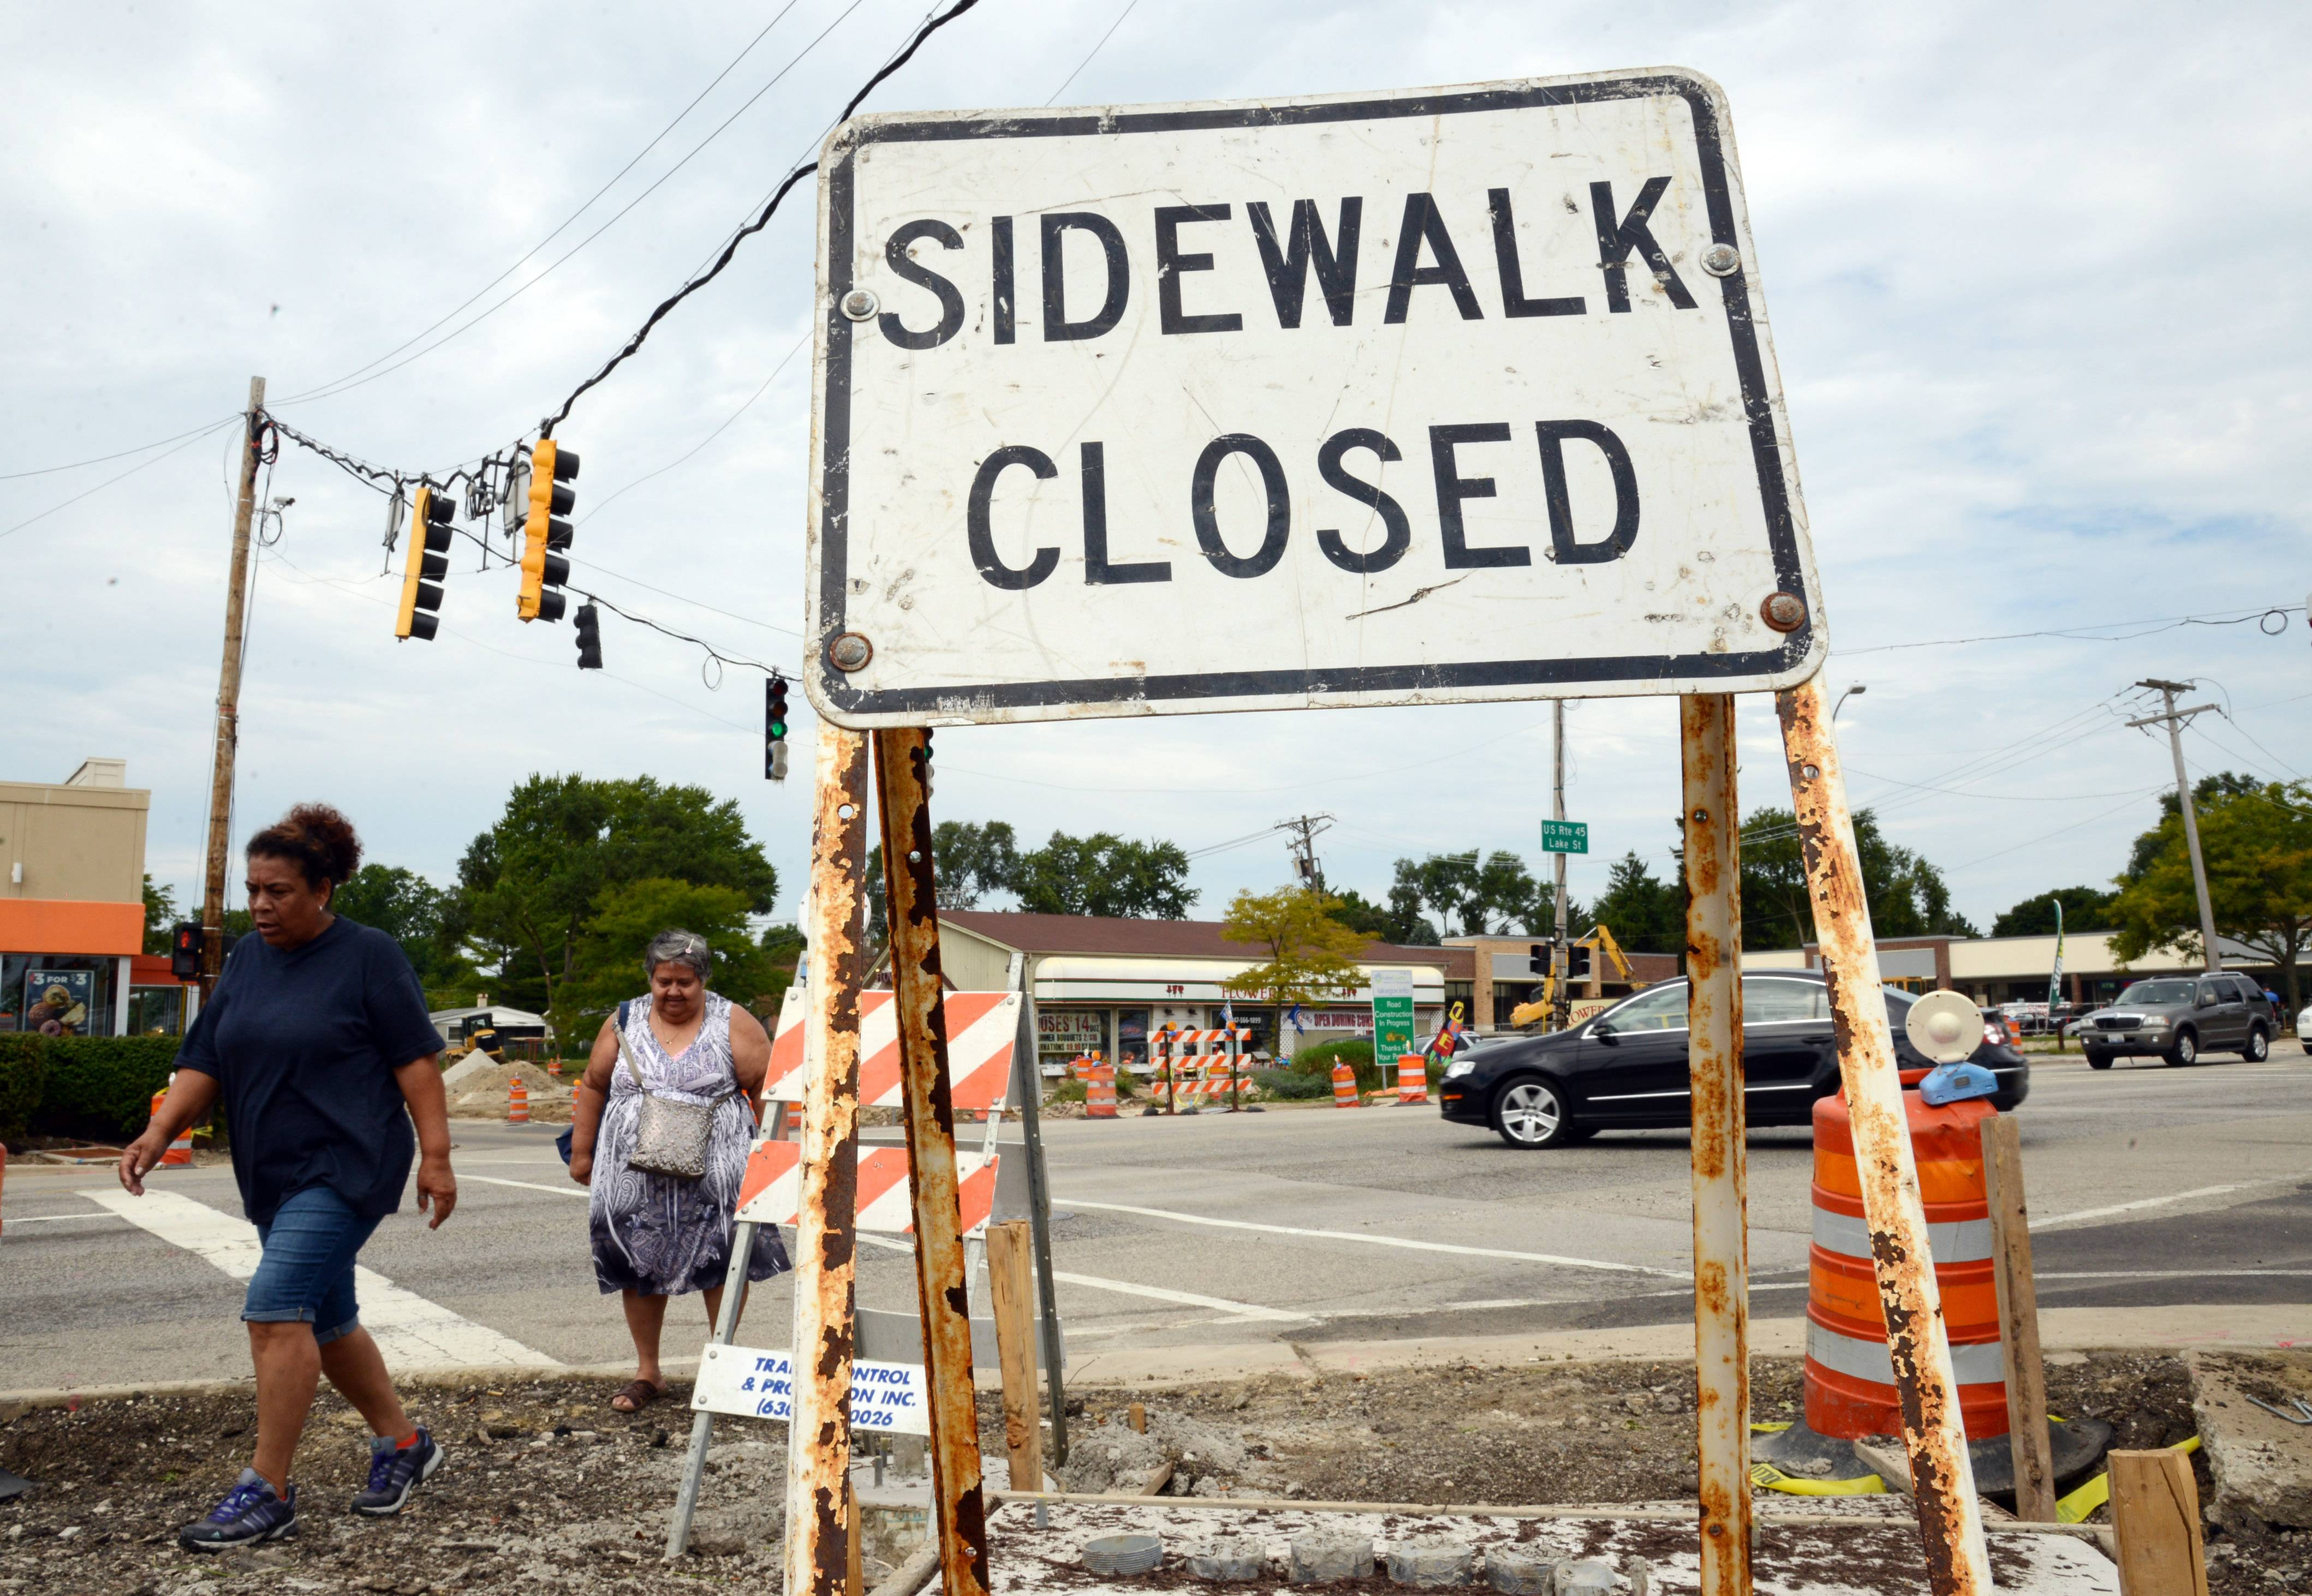 Route 45 being repaved in Mundelein, so expect delays